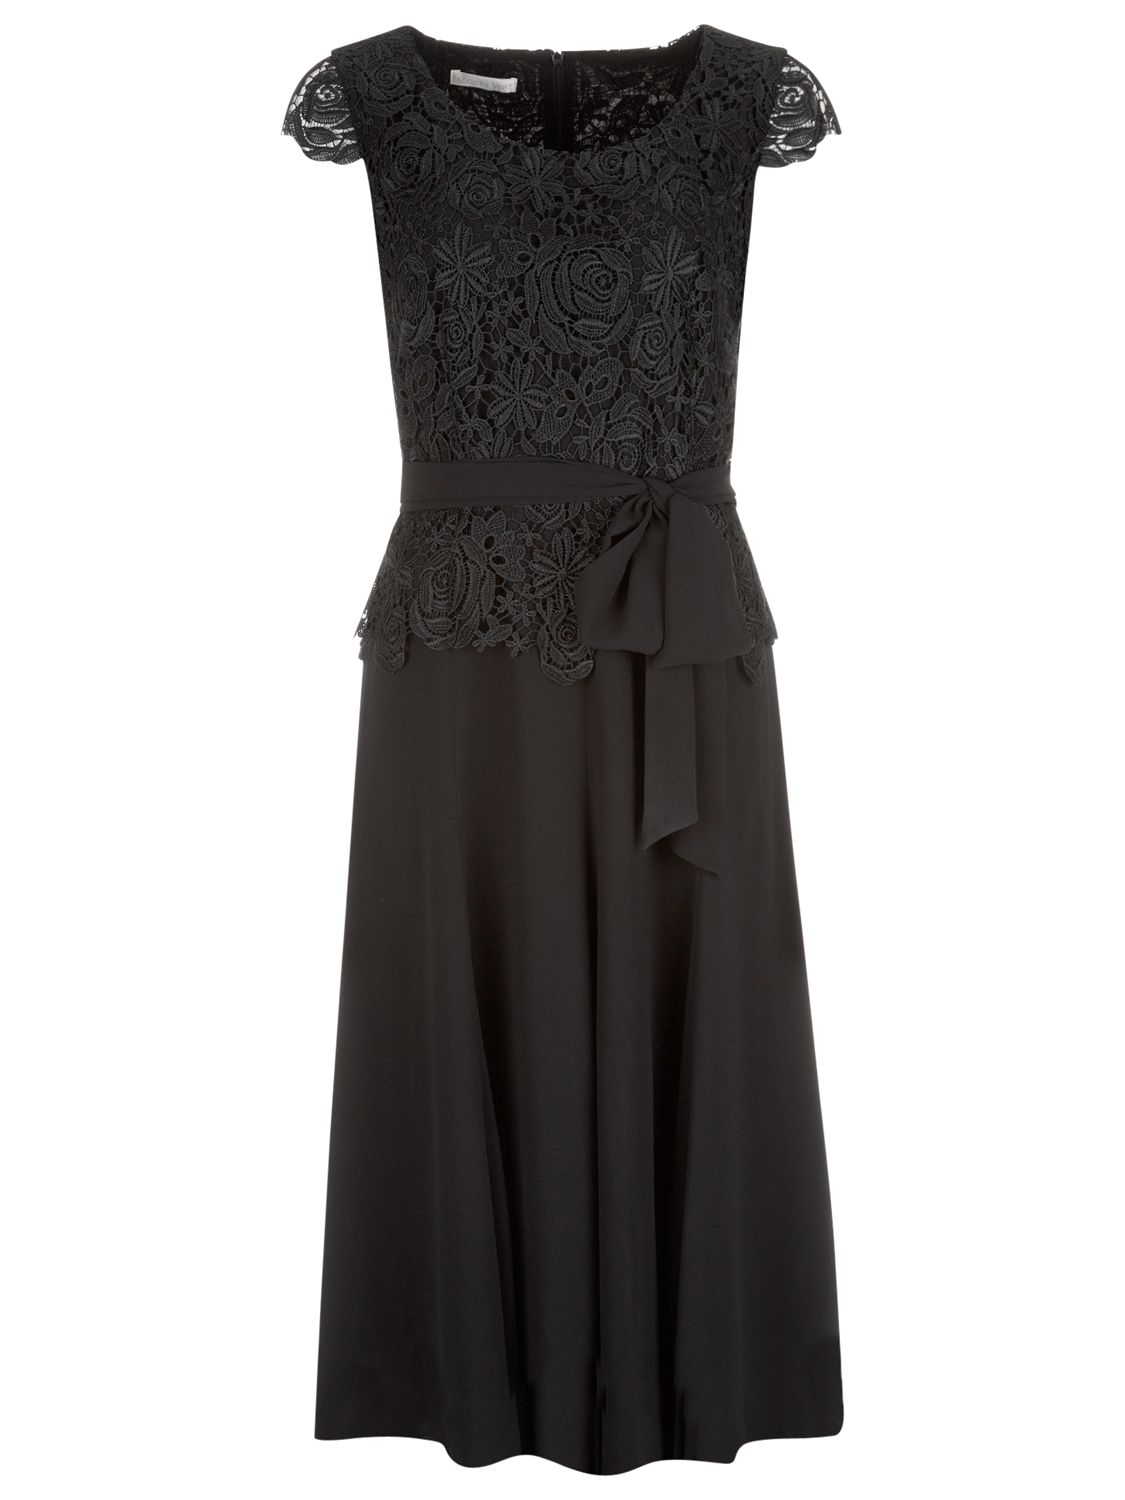 jacques vert lace fit and flare dress black, jacques, vert, lace, fit, flare, dress, black, jacques vert, 12|22|10, clearance, womenswear offers, womens dresses offers, women, plus size, special offers, inactive womenswear, new reductions, party outfits, lace dress, womens dresses, 1675162